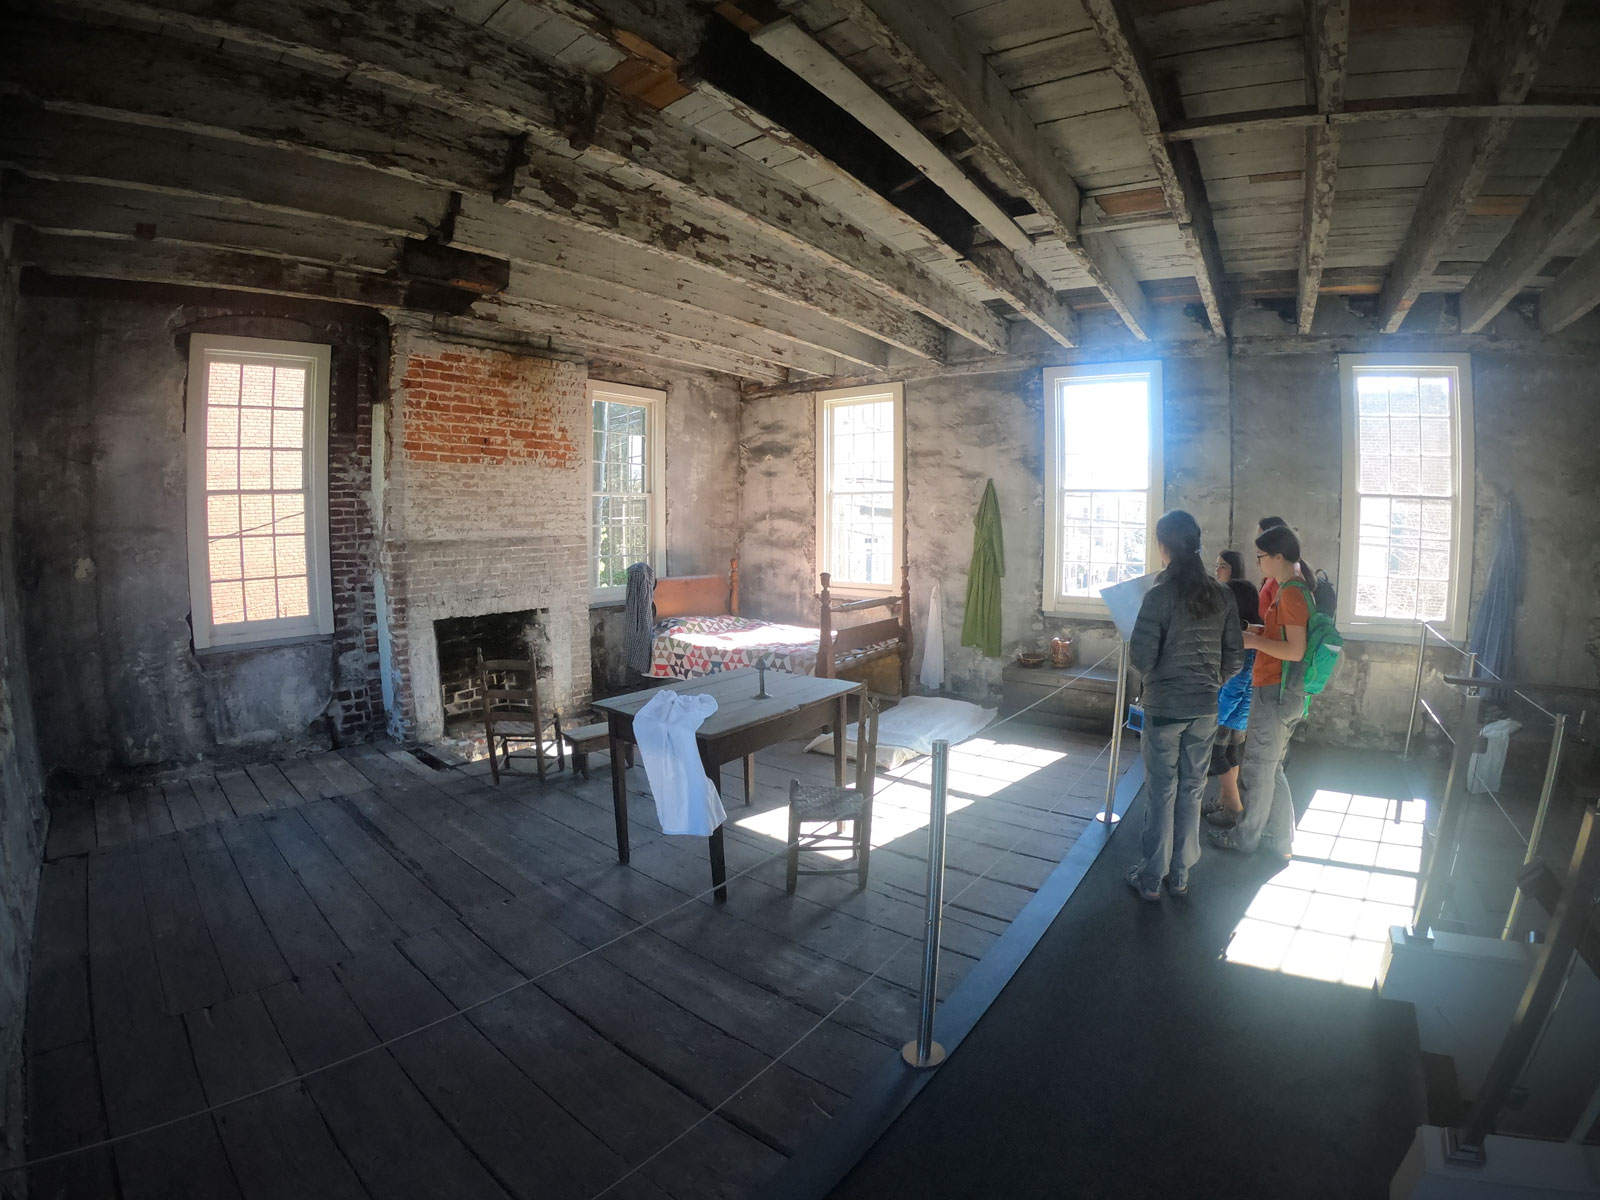 second story of slave quarters in the Owens-Thomas House & Slave Quarters in Savannah, Georgia